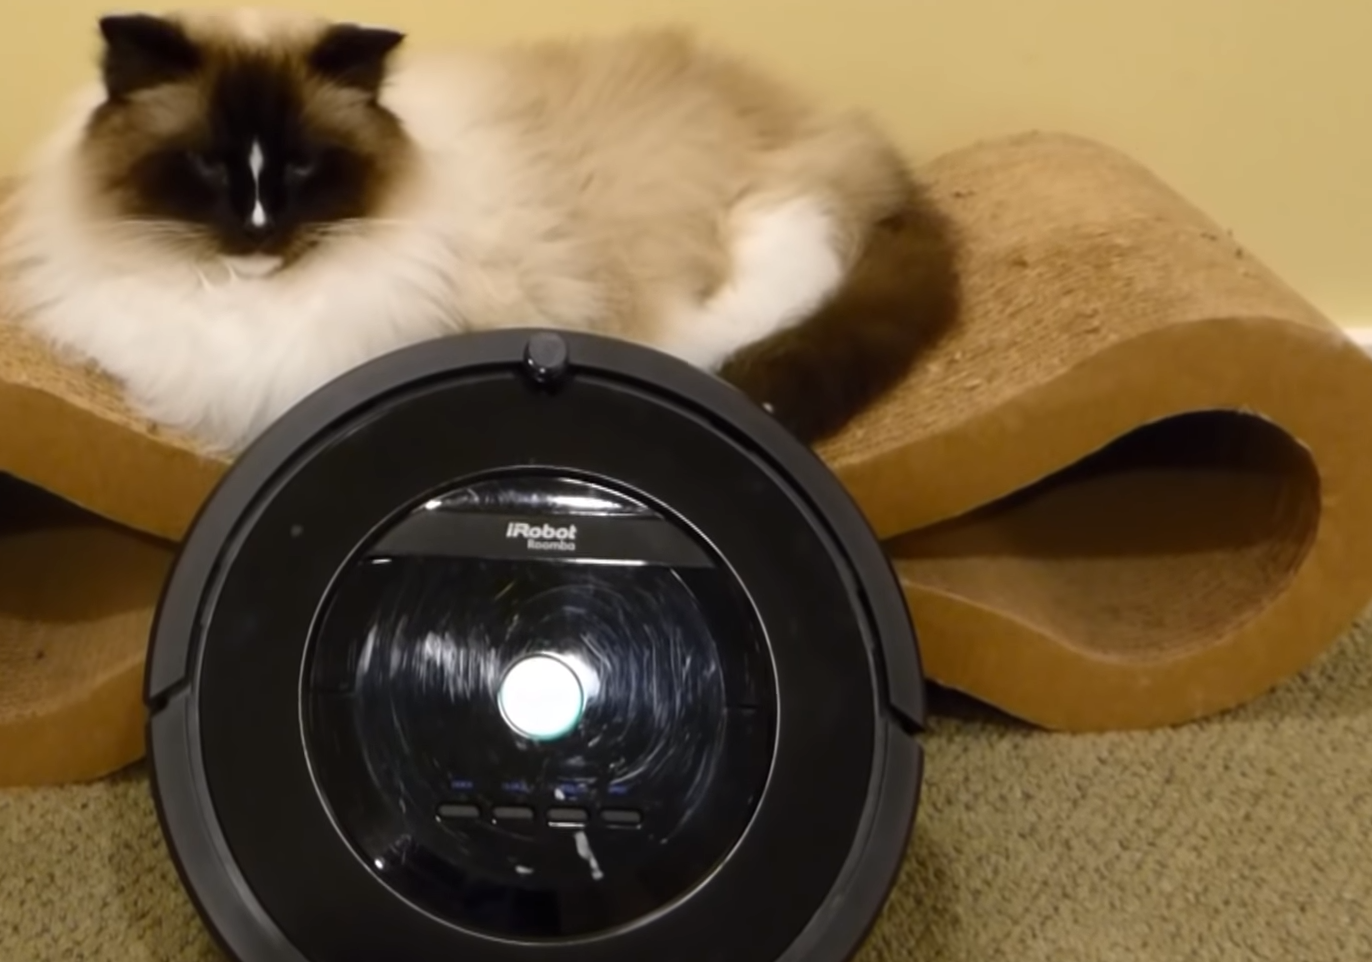 Astonishing Are Roomba Vacuums Any Good For Picking Up Animal Fur Download Free Architecture Designs Scobabritishbridgeorg